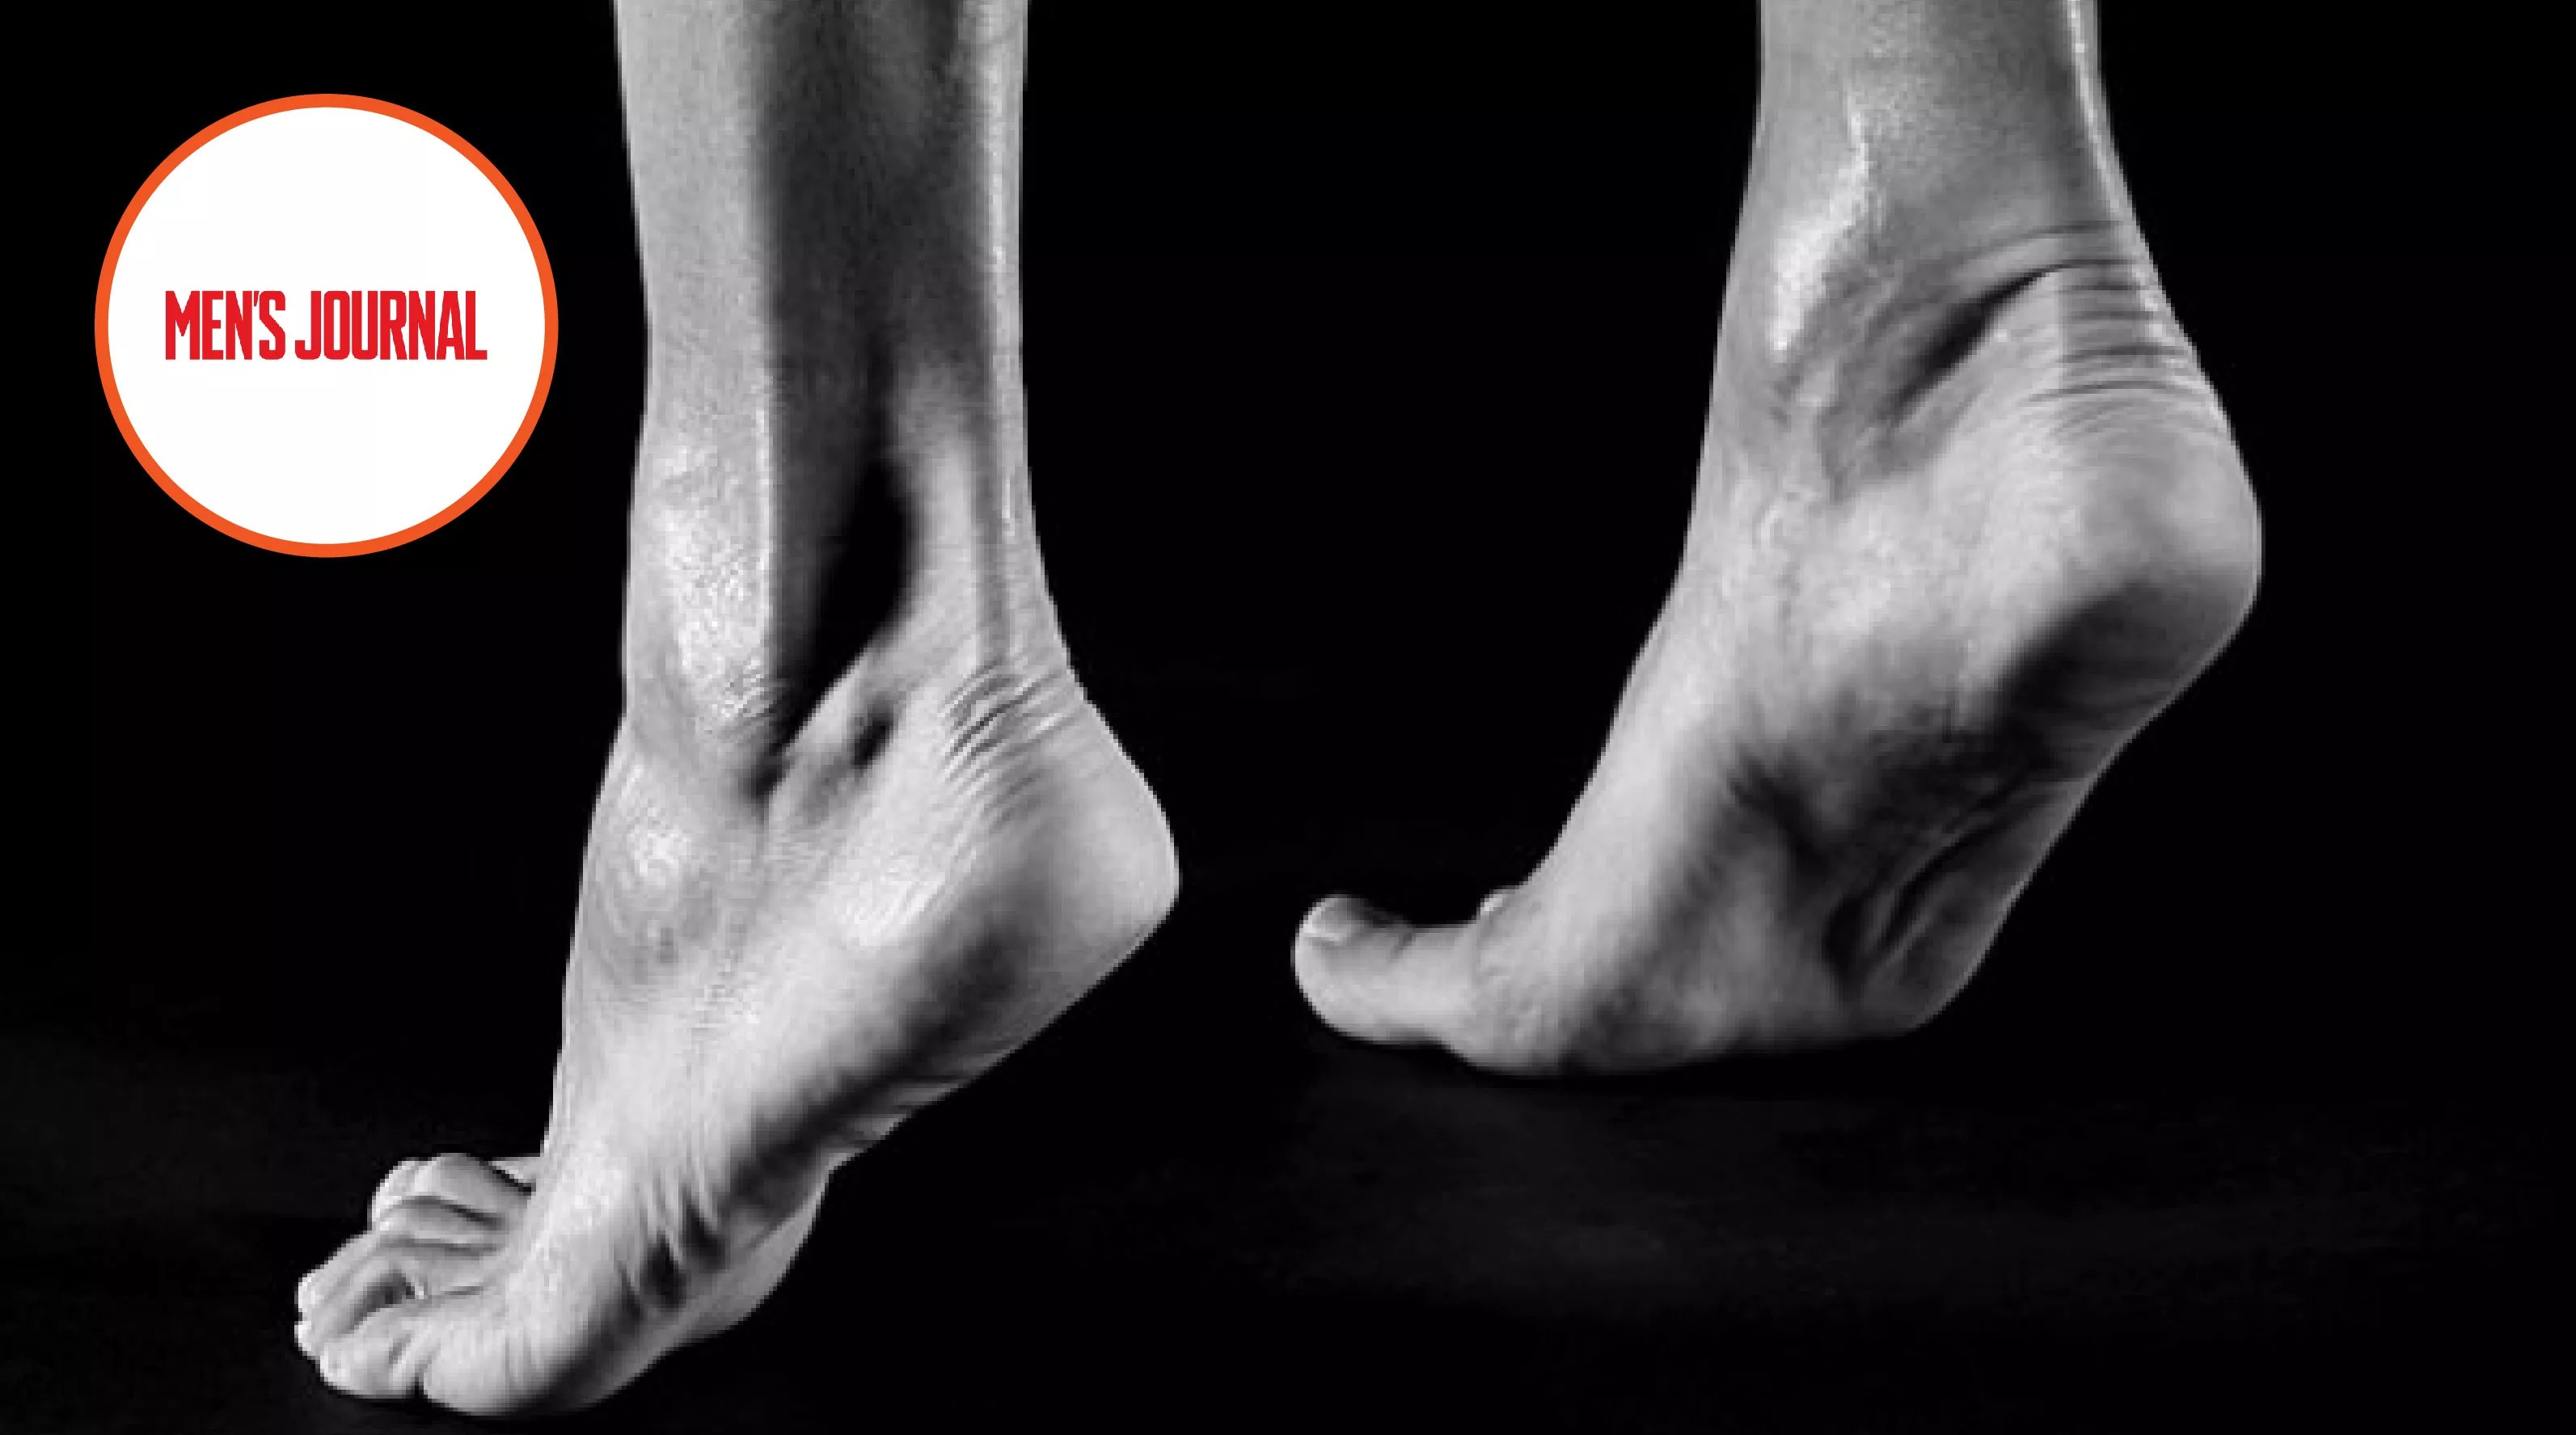 3 Easy Exercises To Help Prevent Ankle Injuries